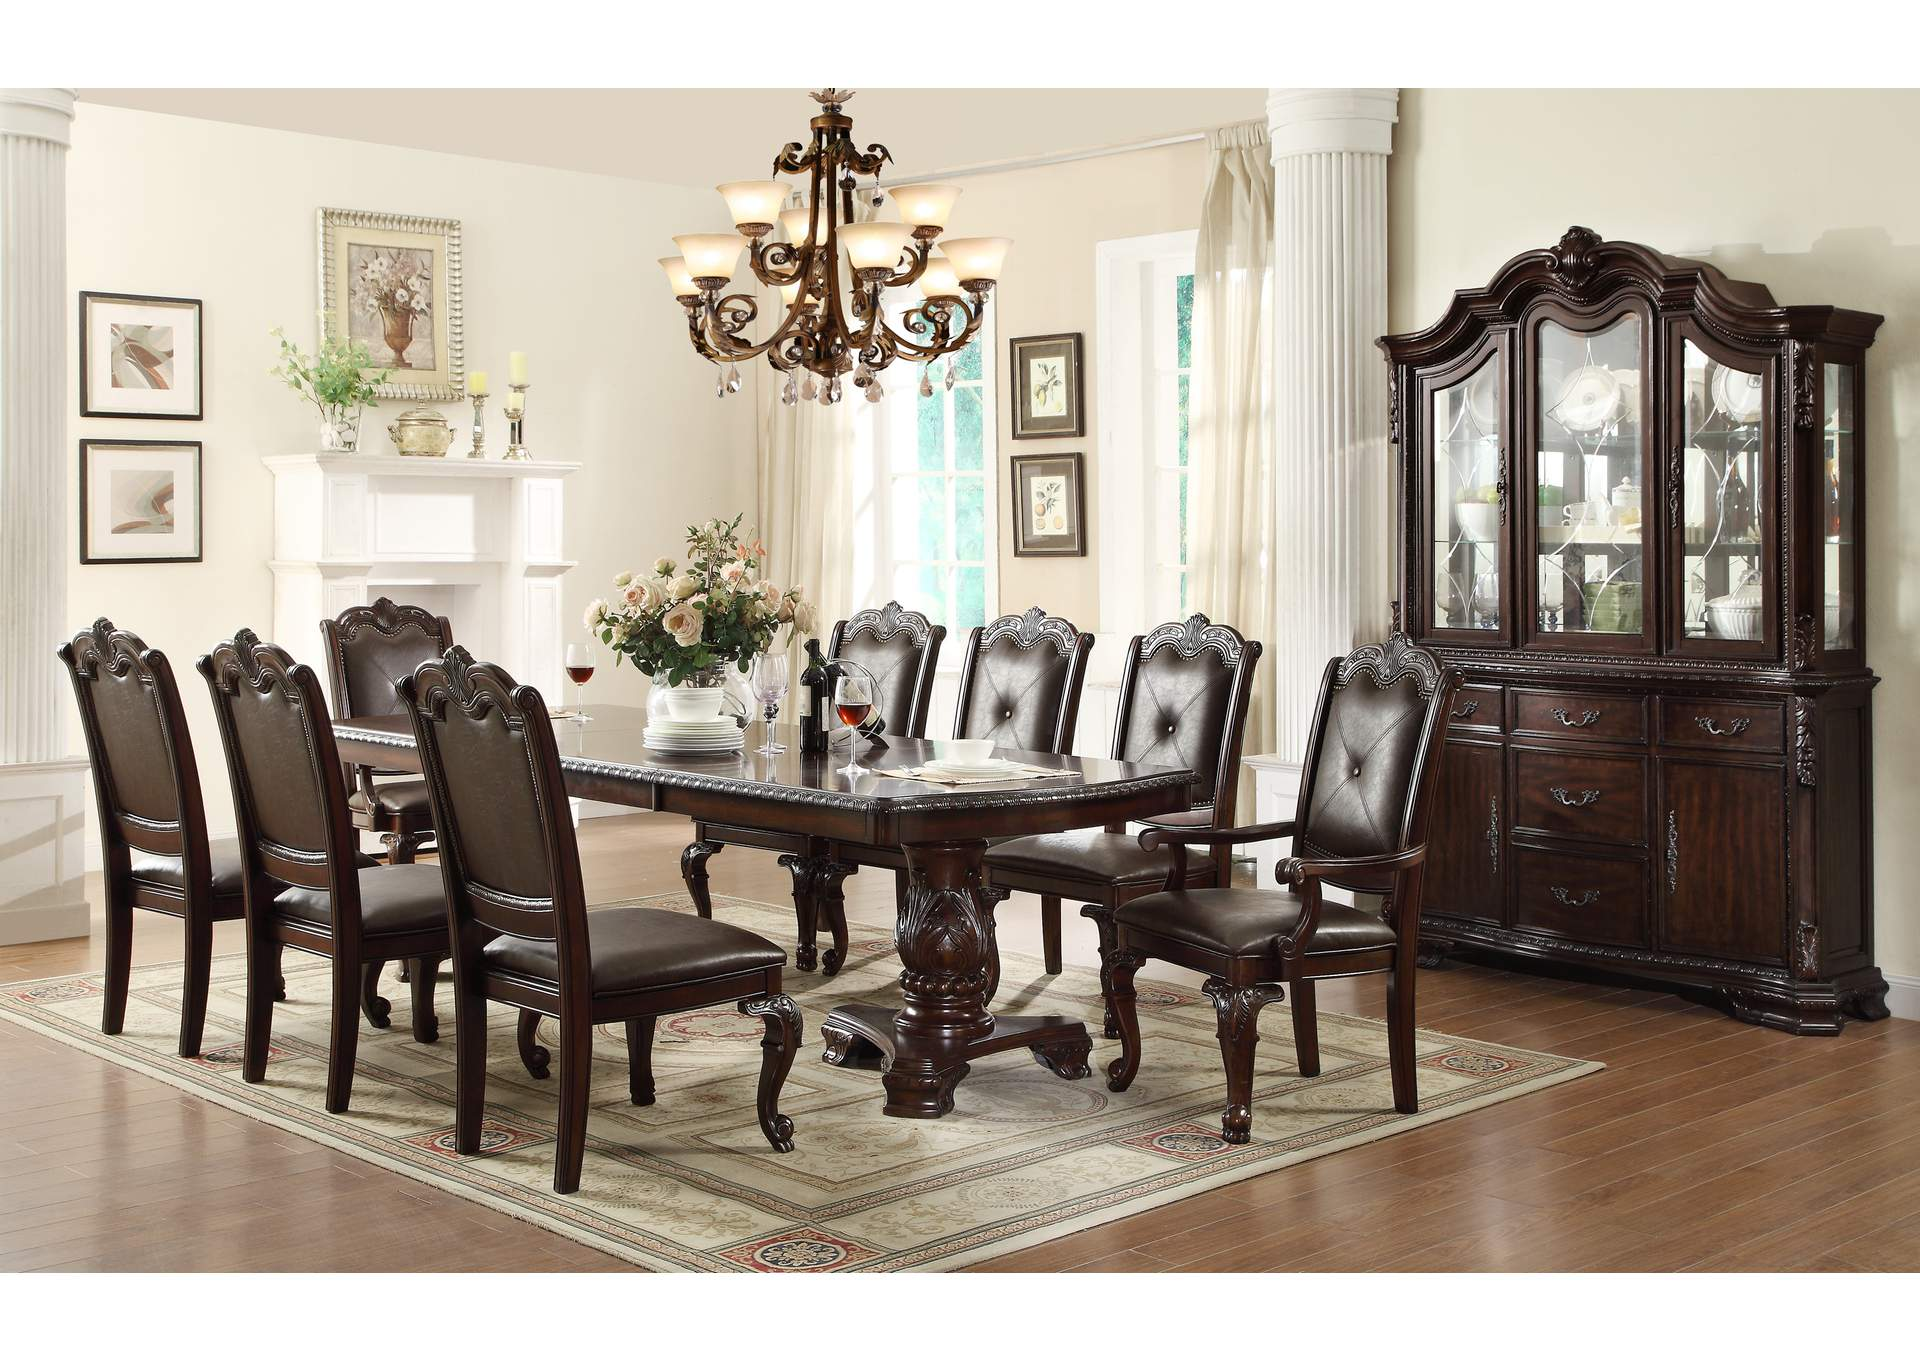 Kiera Rectangular Dining Room Table w/6 Side Chairs and 2 Armed Chairs,Crown Mark